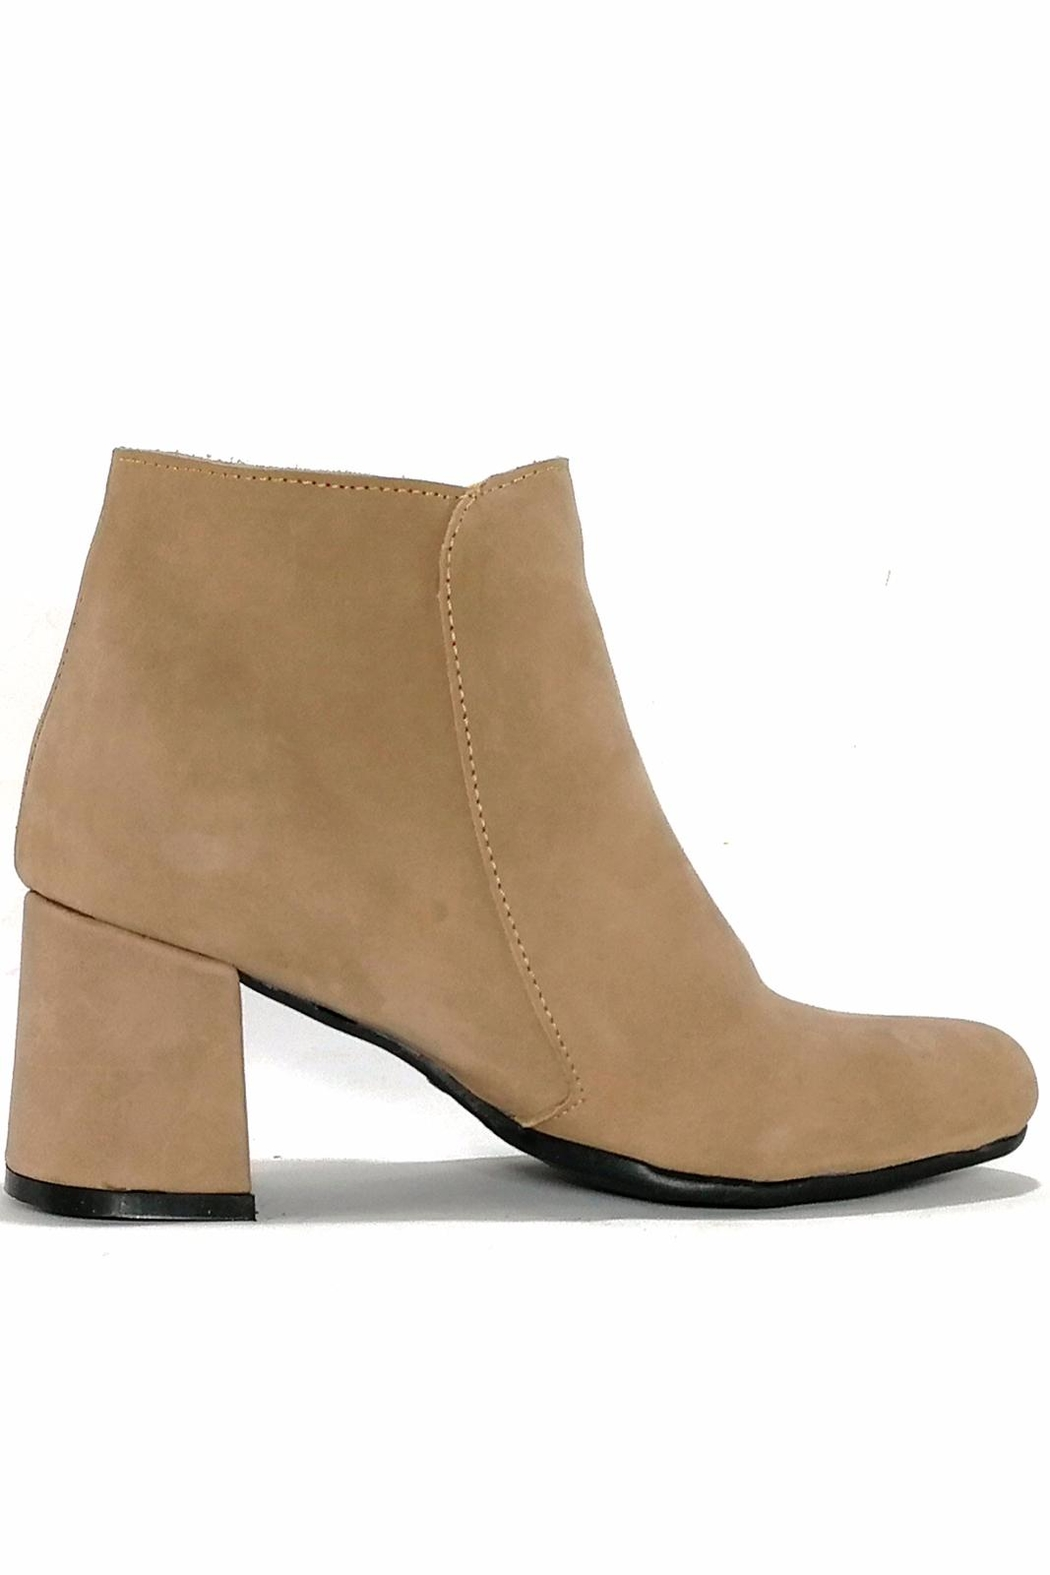 MIYE COLLAZZO Beige Leather Bootie - Side Cropped Image